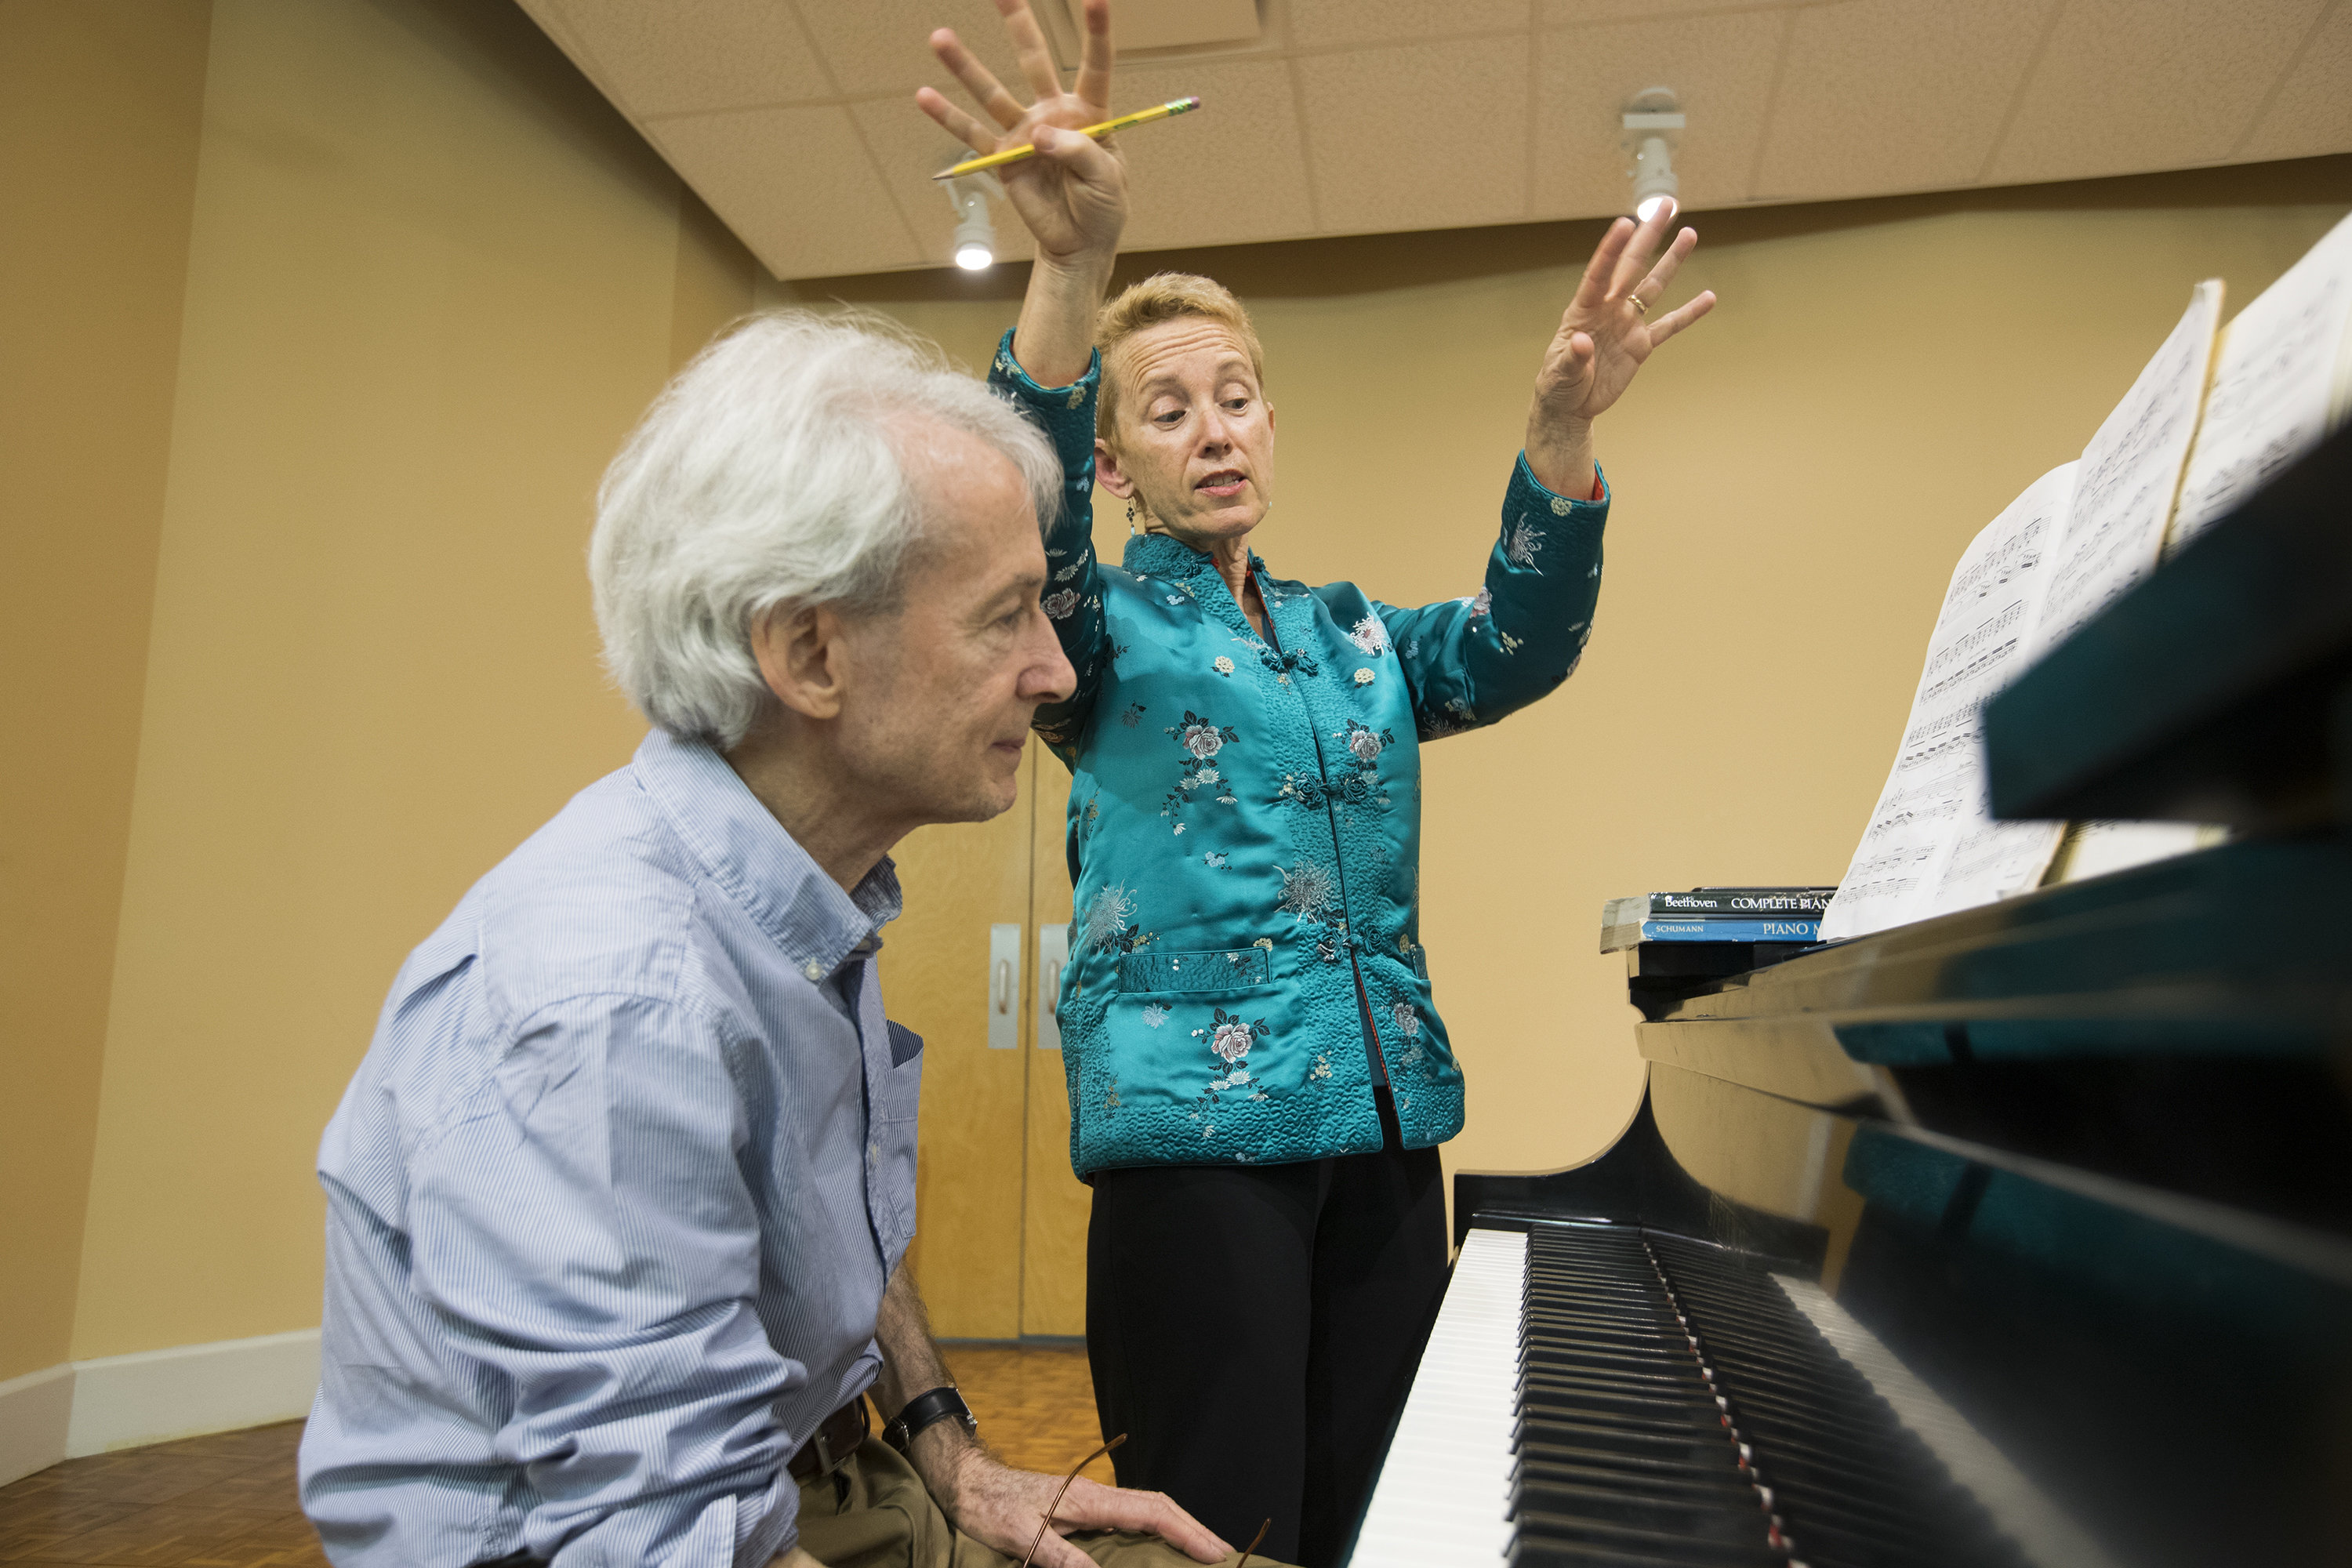 Linda Reichert, right, works with Len Rieser at the Germantown branch of the Settlement Music School to prepare for a recital,